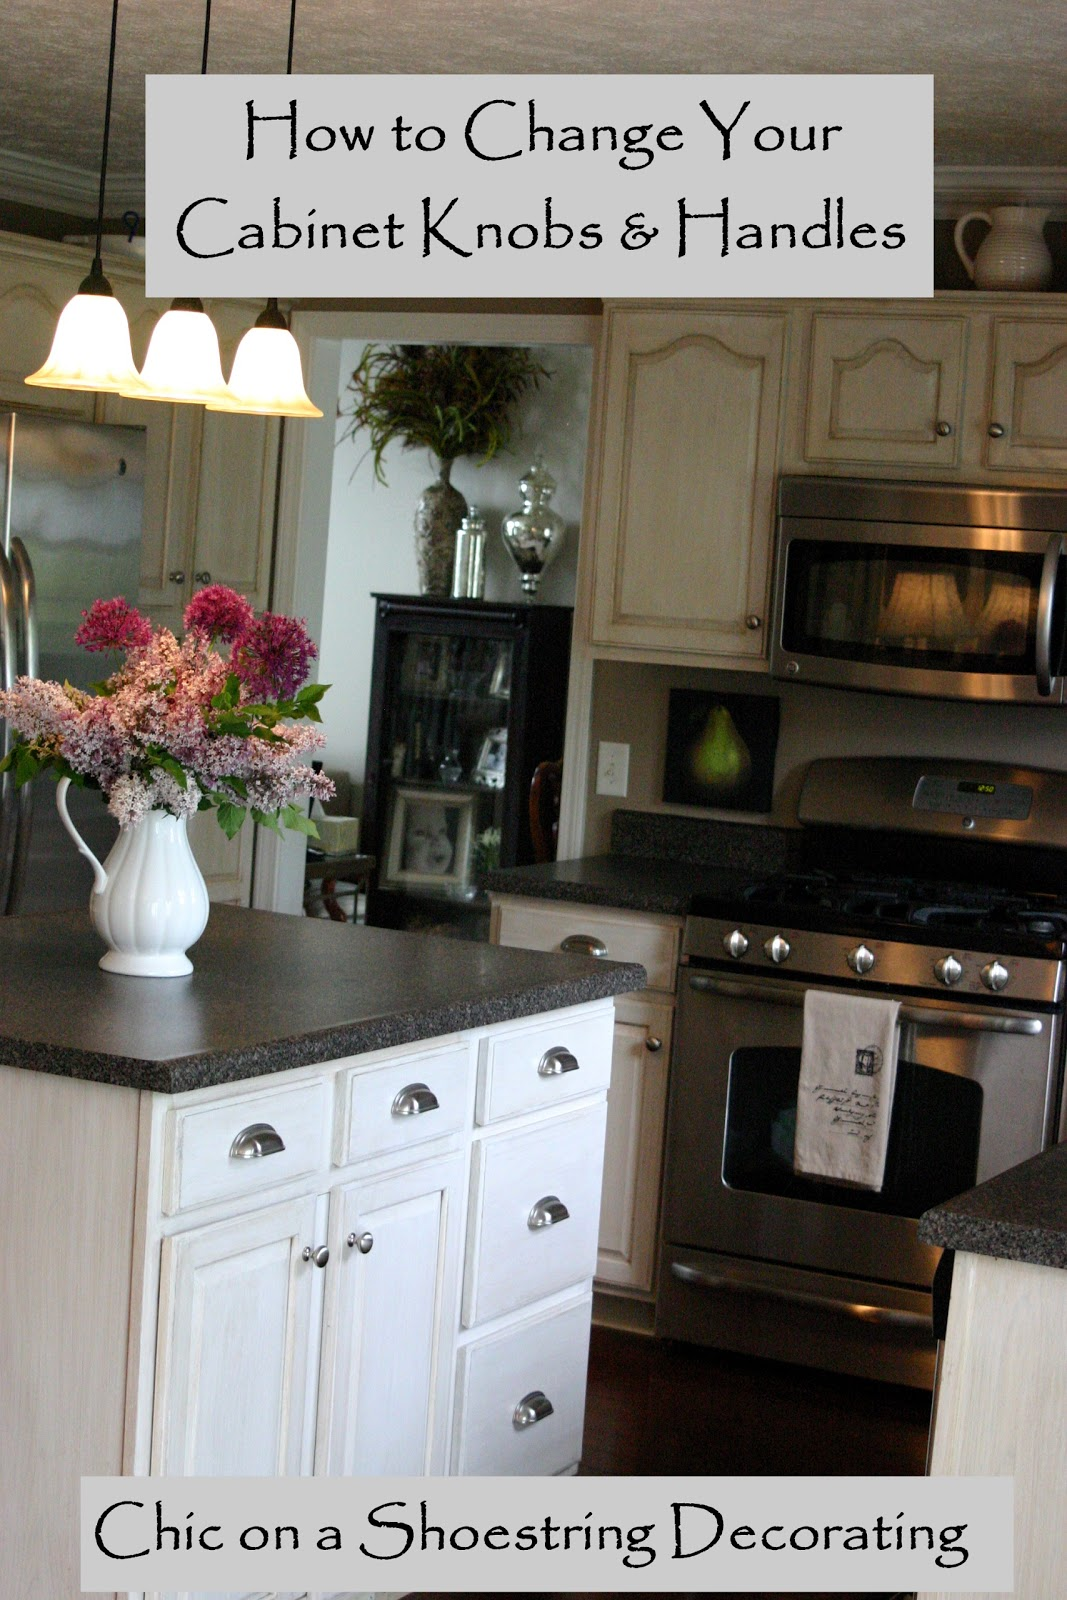 chic on a shoestring decorating: how to change your kitchen